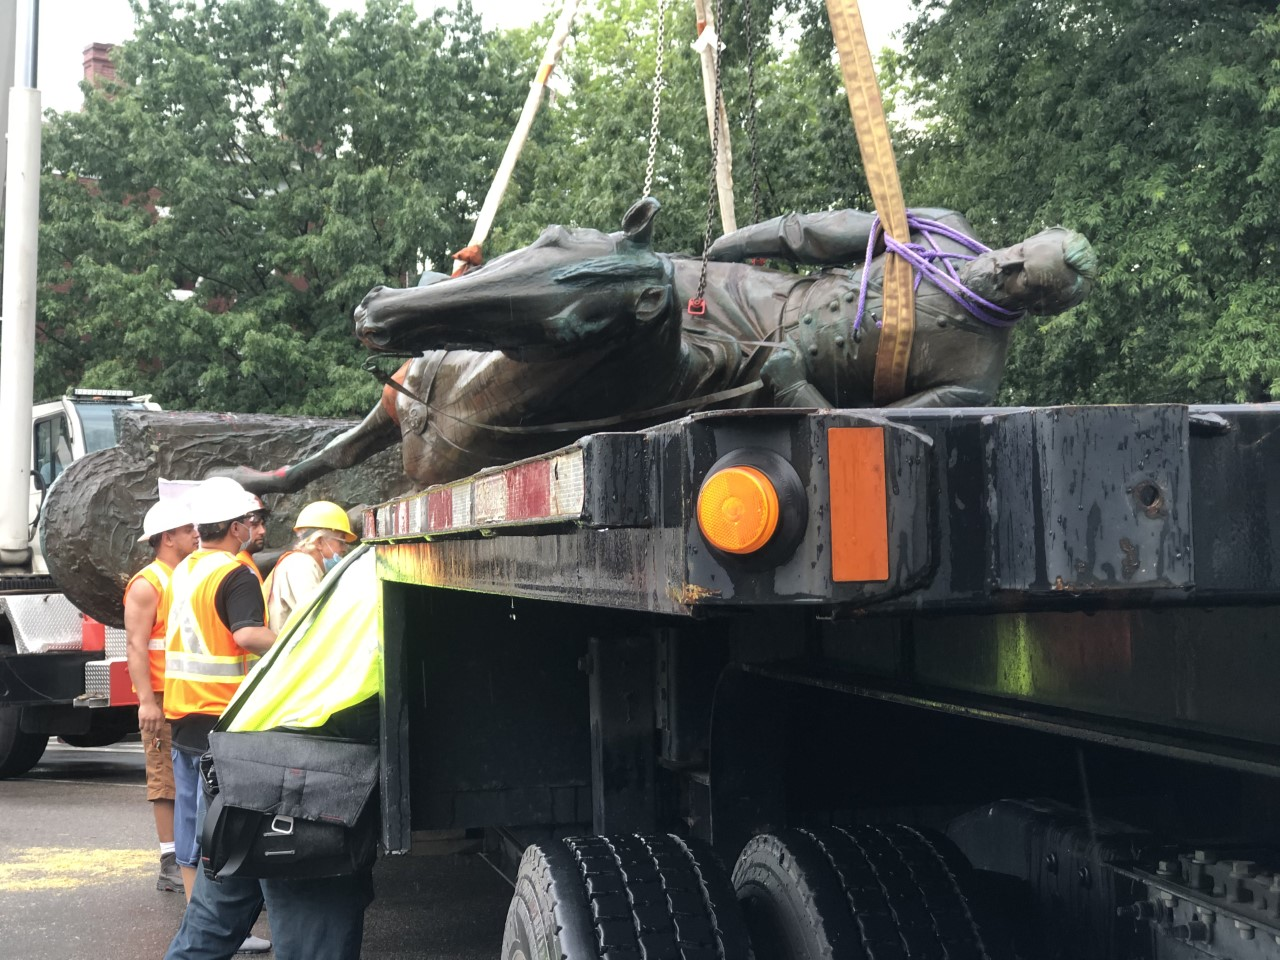 Stonewall being lifted onto flatbed